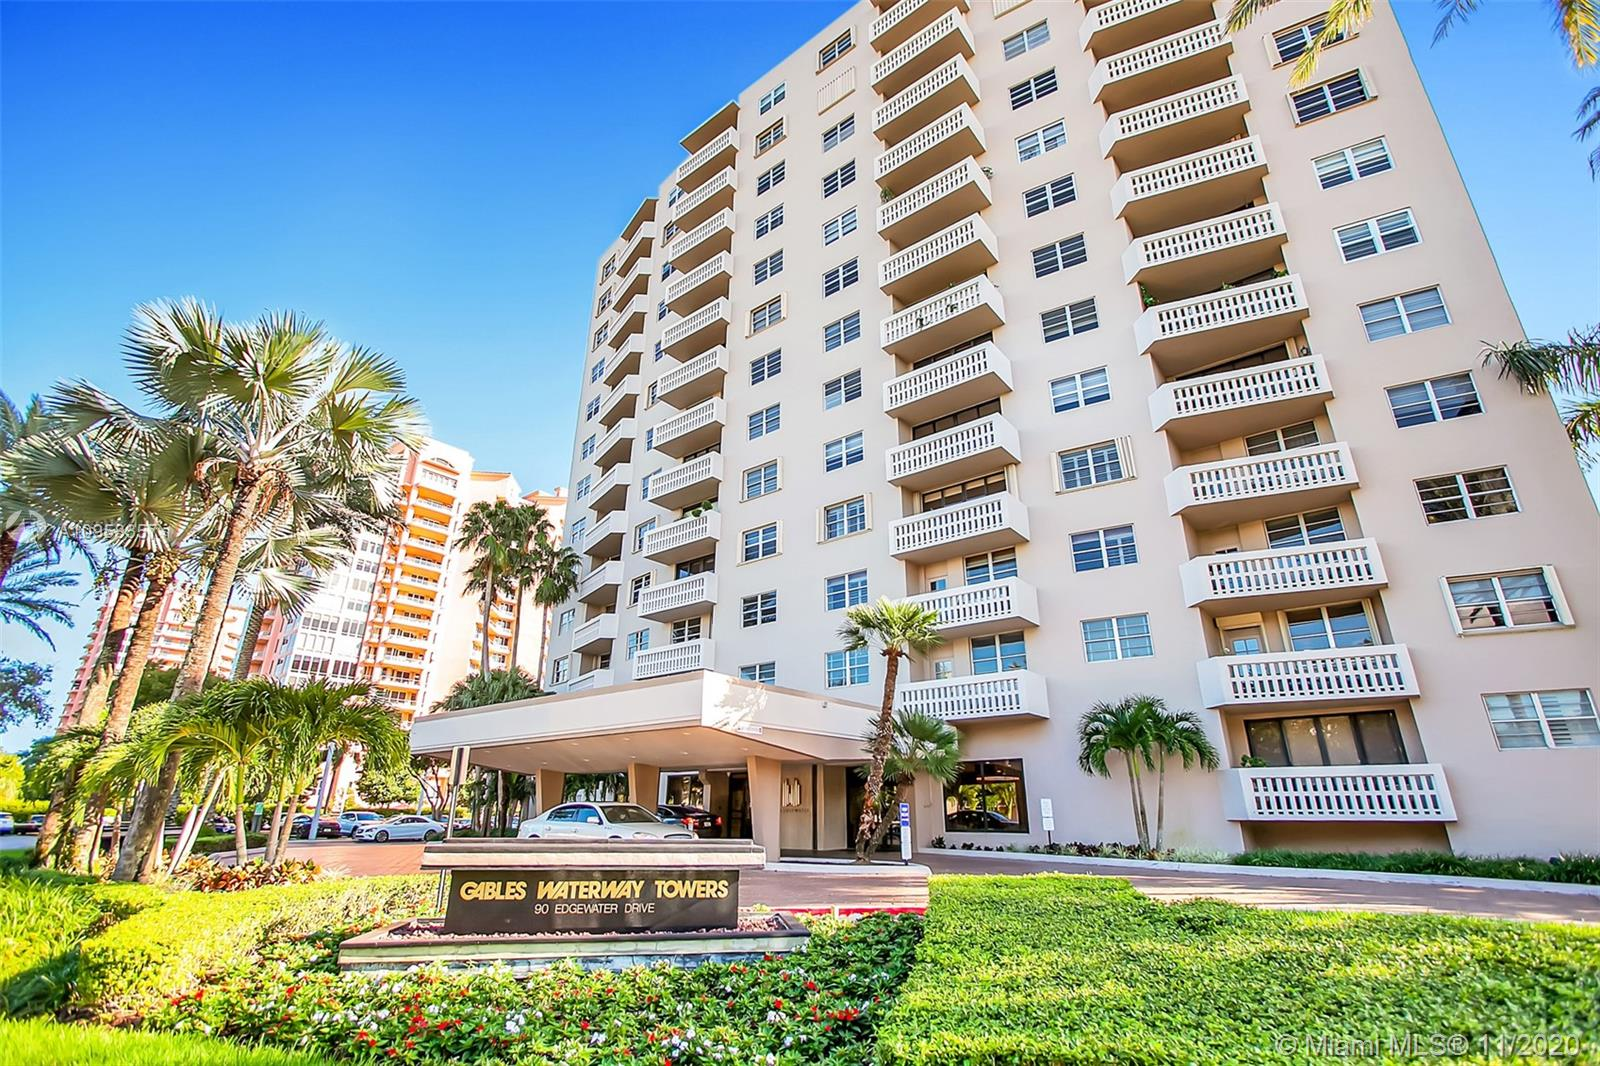 Gables Waterway #318 - 90 Edgewater Dr #318, Coral Gables, FL 33133